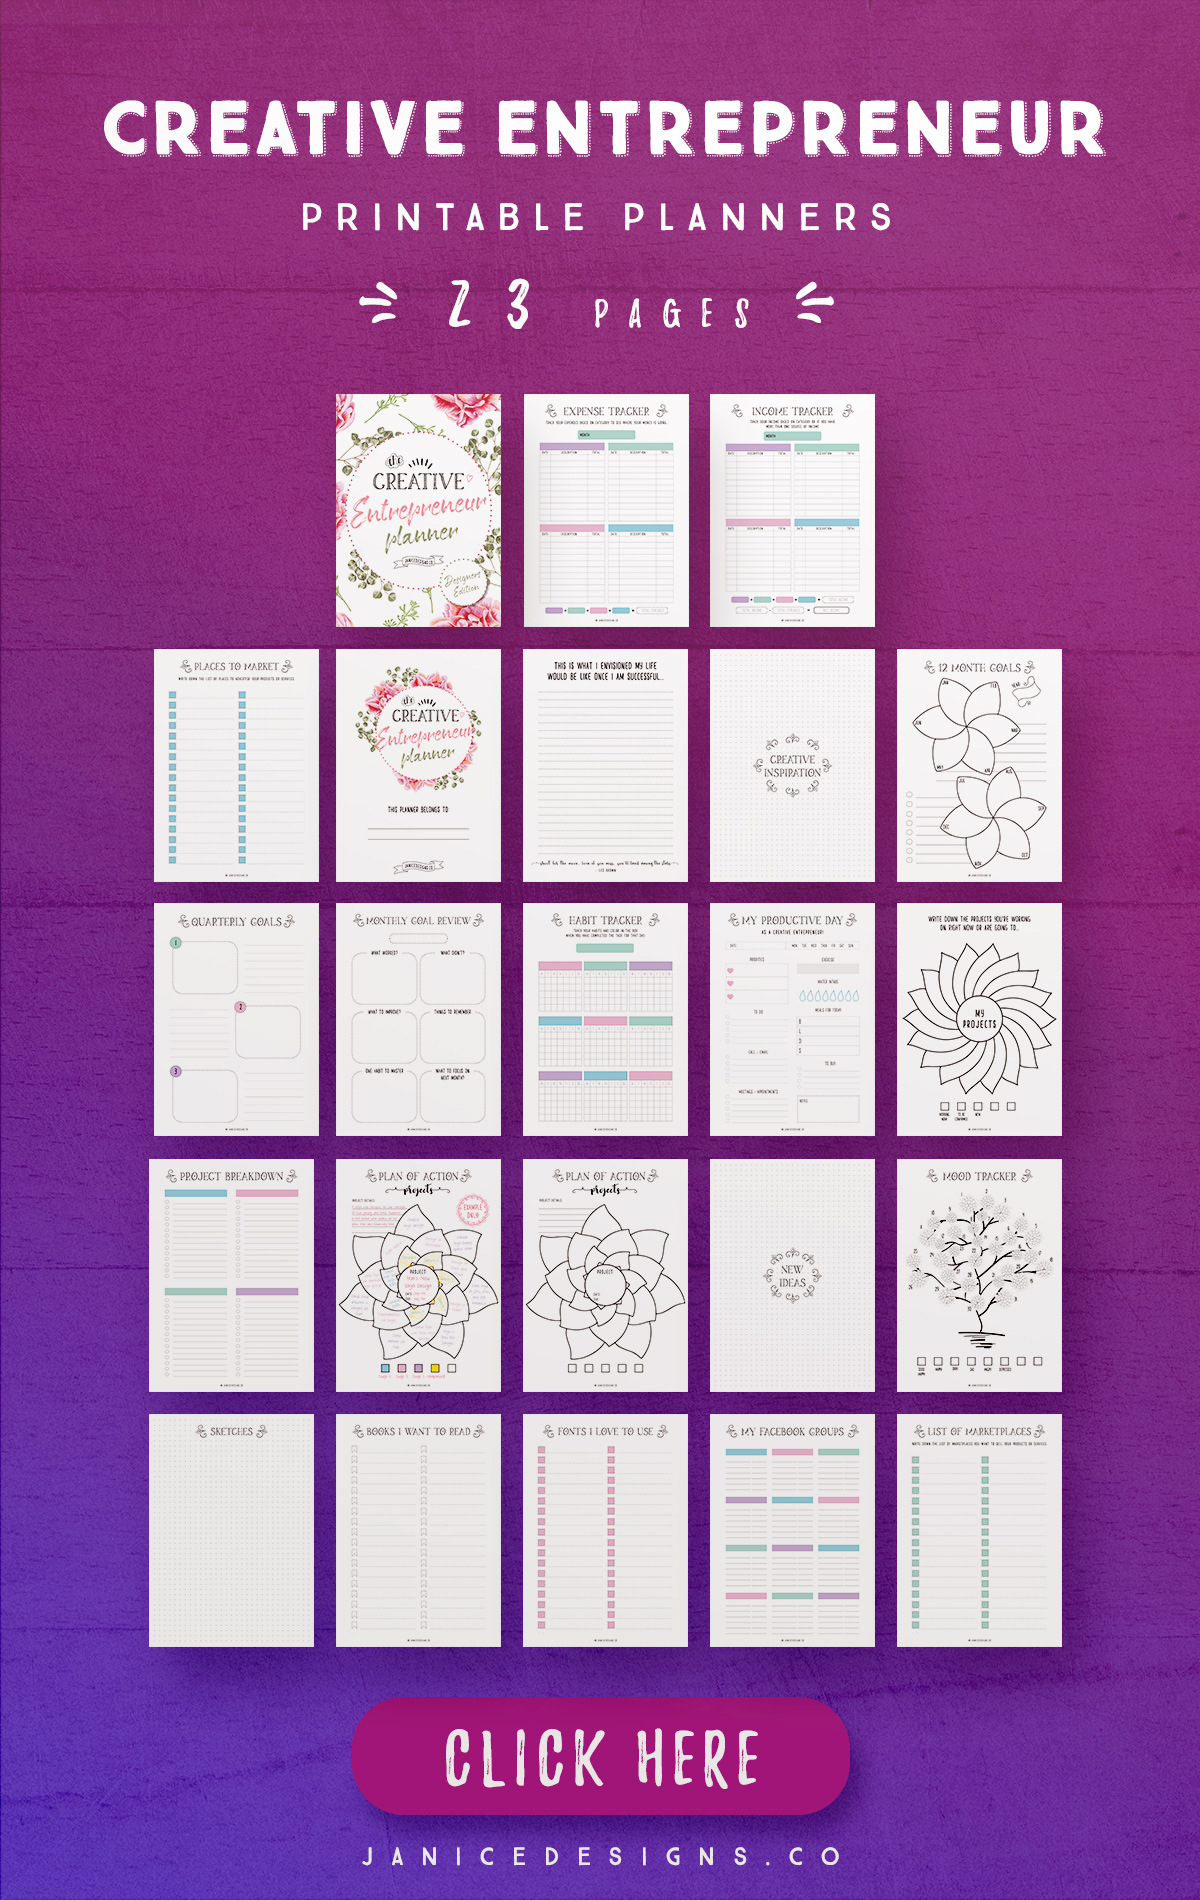 Creative Entrepreneur Printable Planners - 23 Pages example image 4